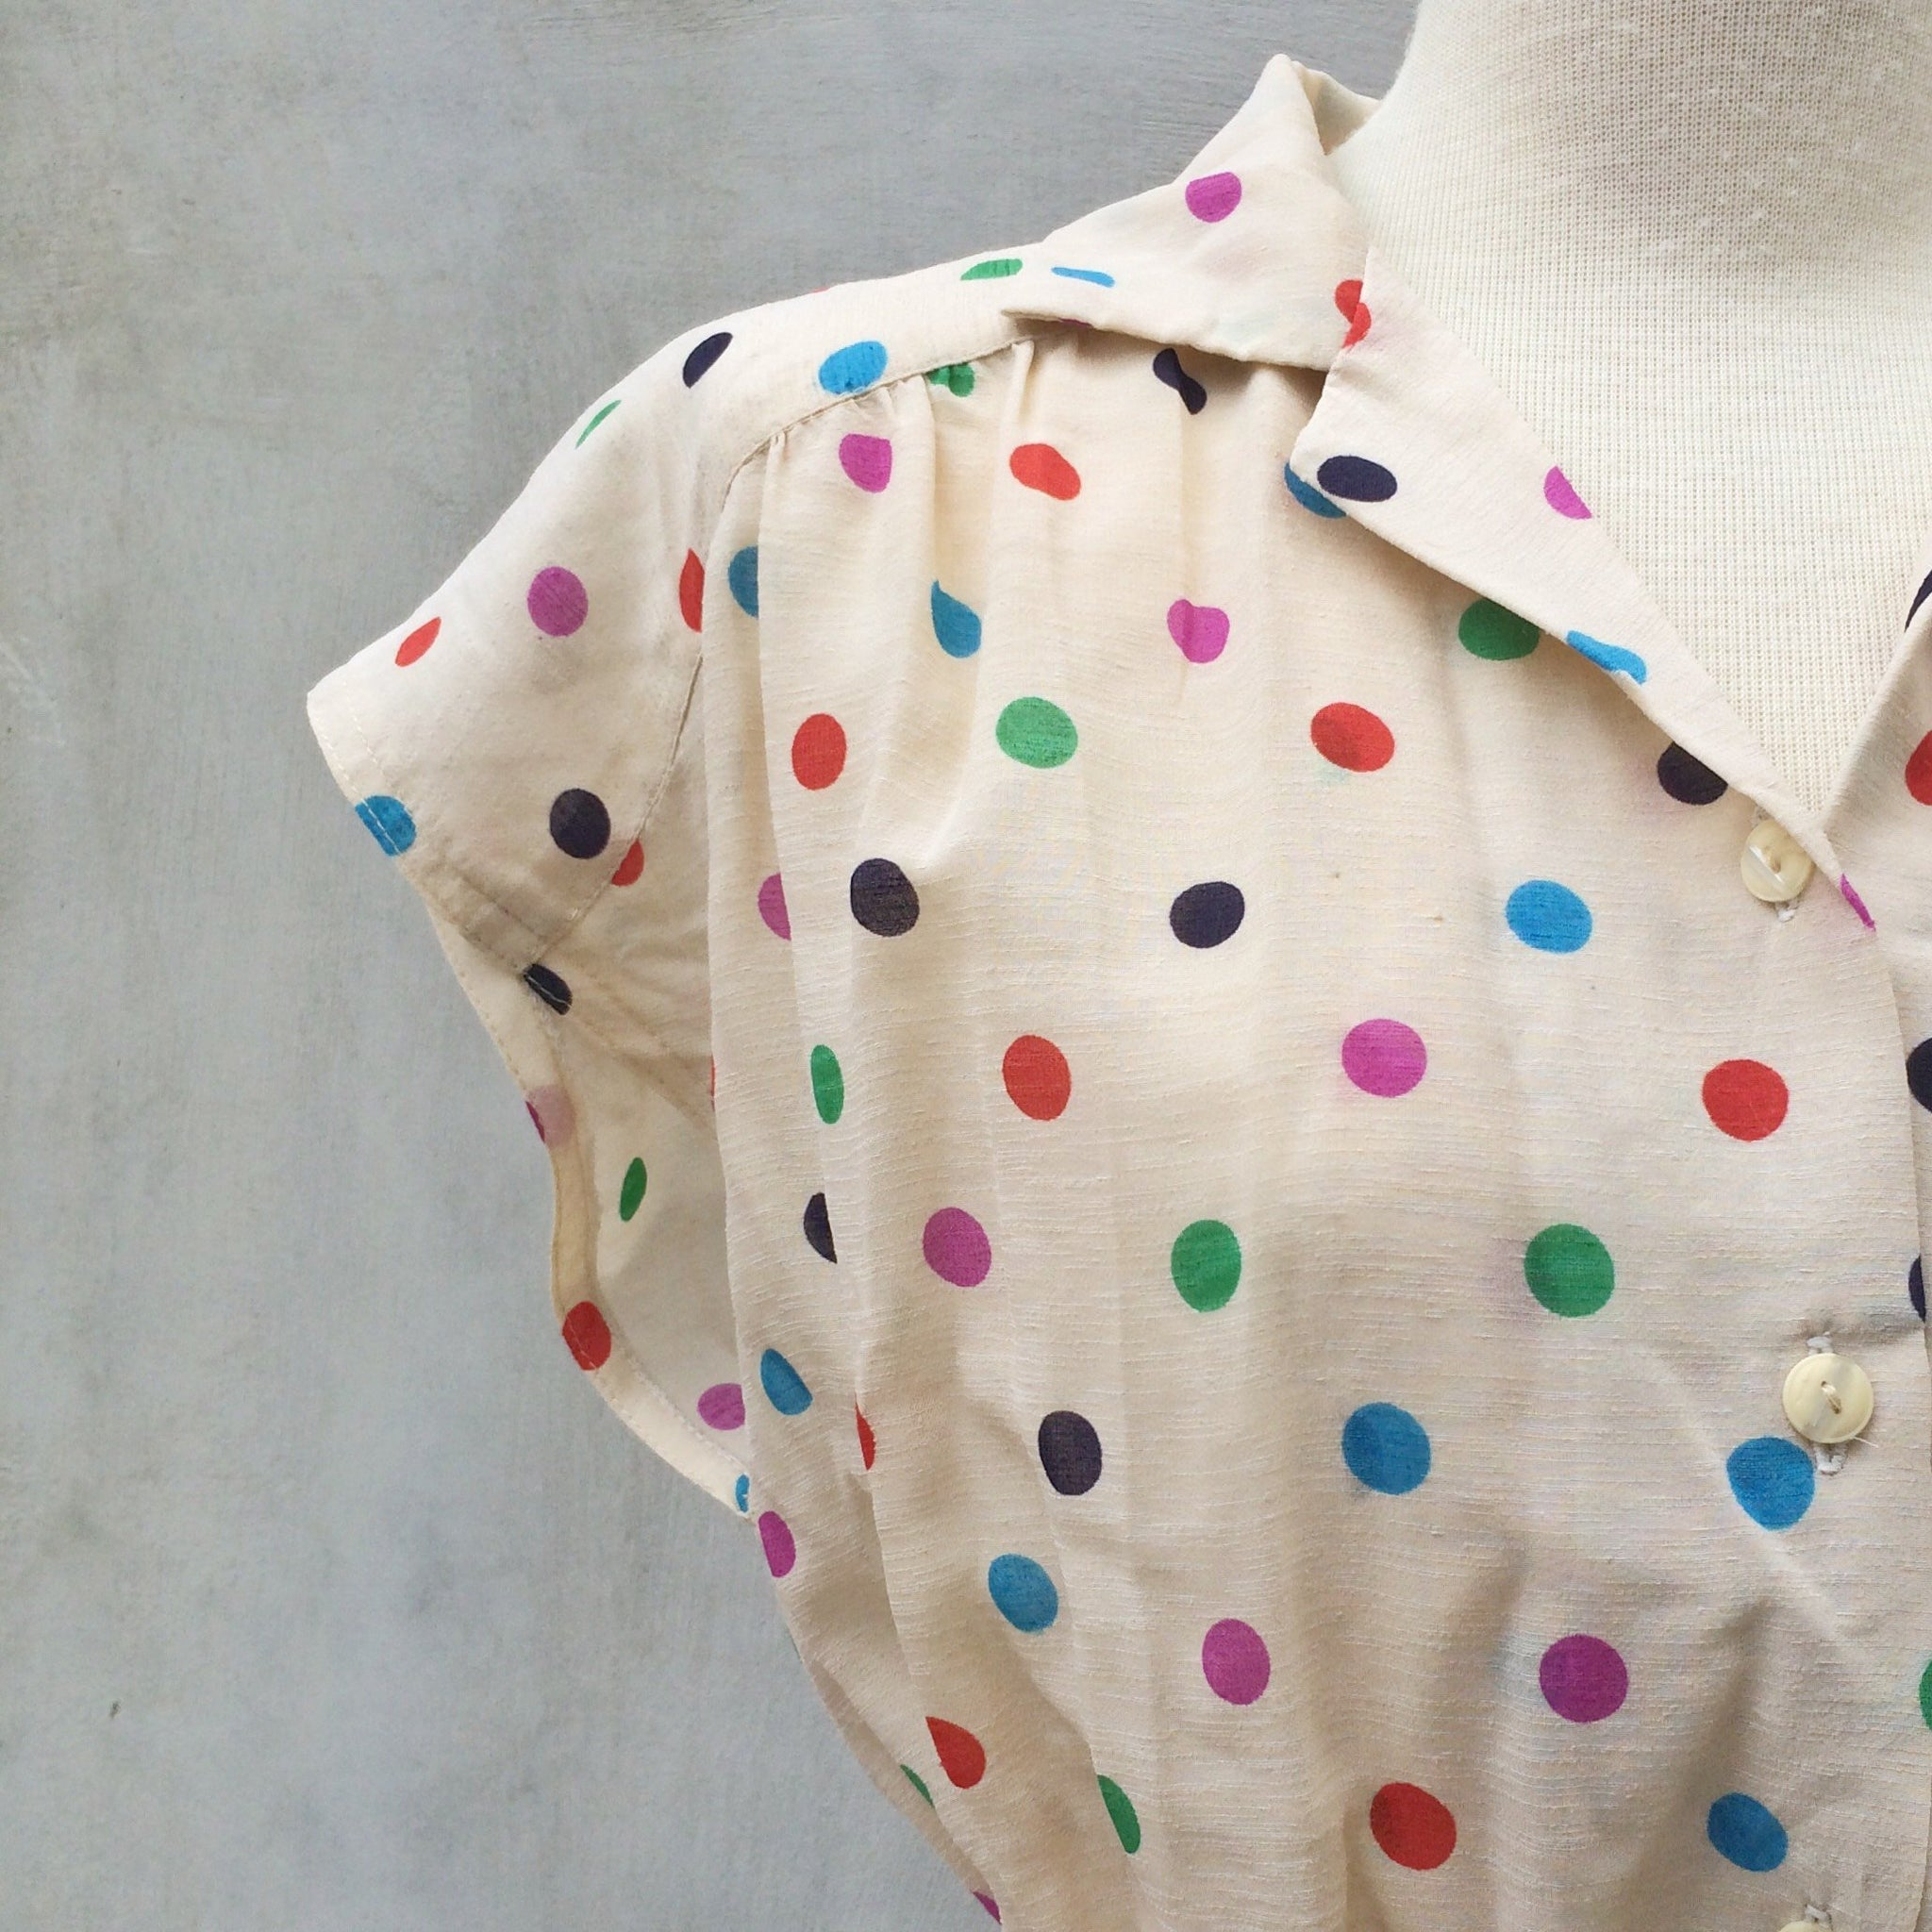 Dancing Circles | Vintage 1940s 1950s Colorful circle polka dots Day dress